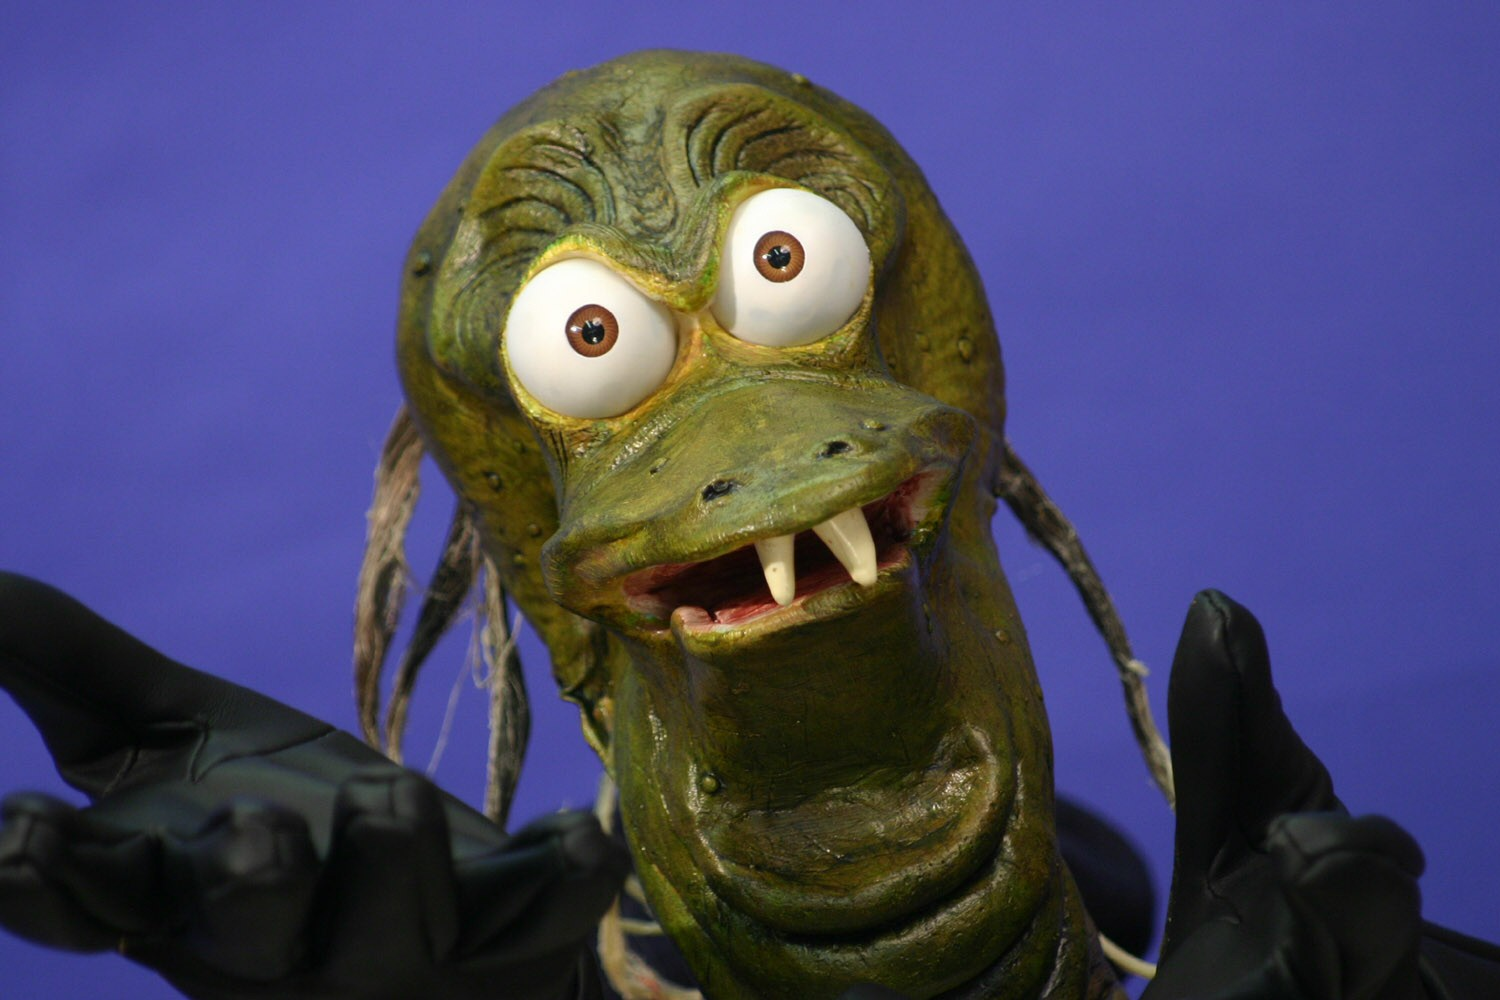 ziltoid.jpg